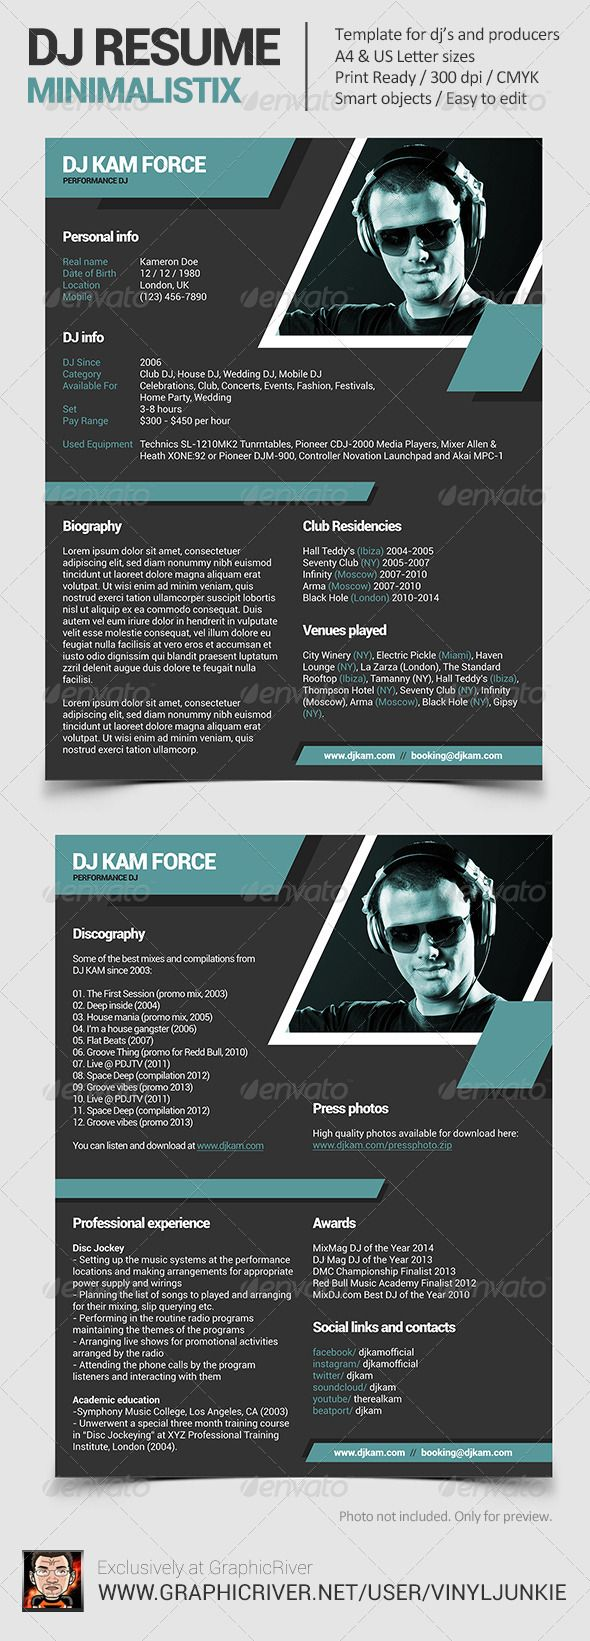 15 best images about dj press kit and dj resume templates for Press kit design